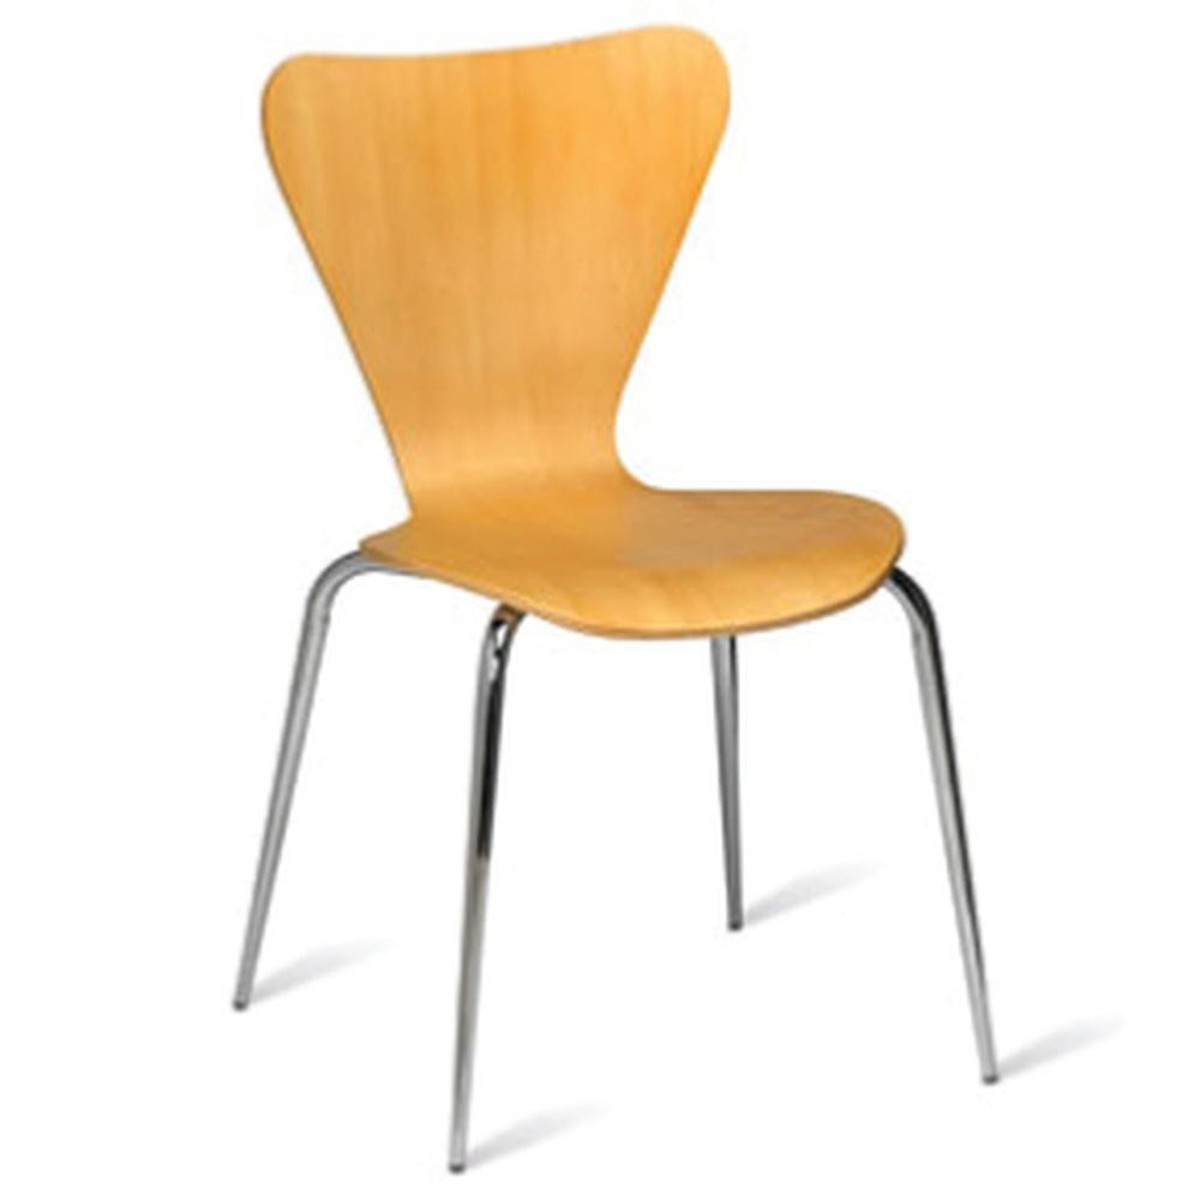 cafe chairs wooden airbag chair prank secondhand and tables stacking 250x